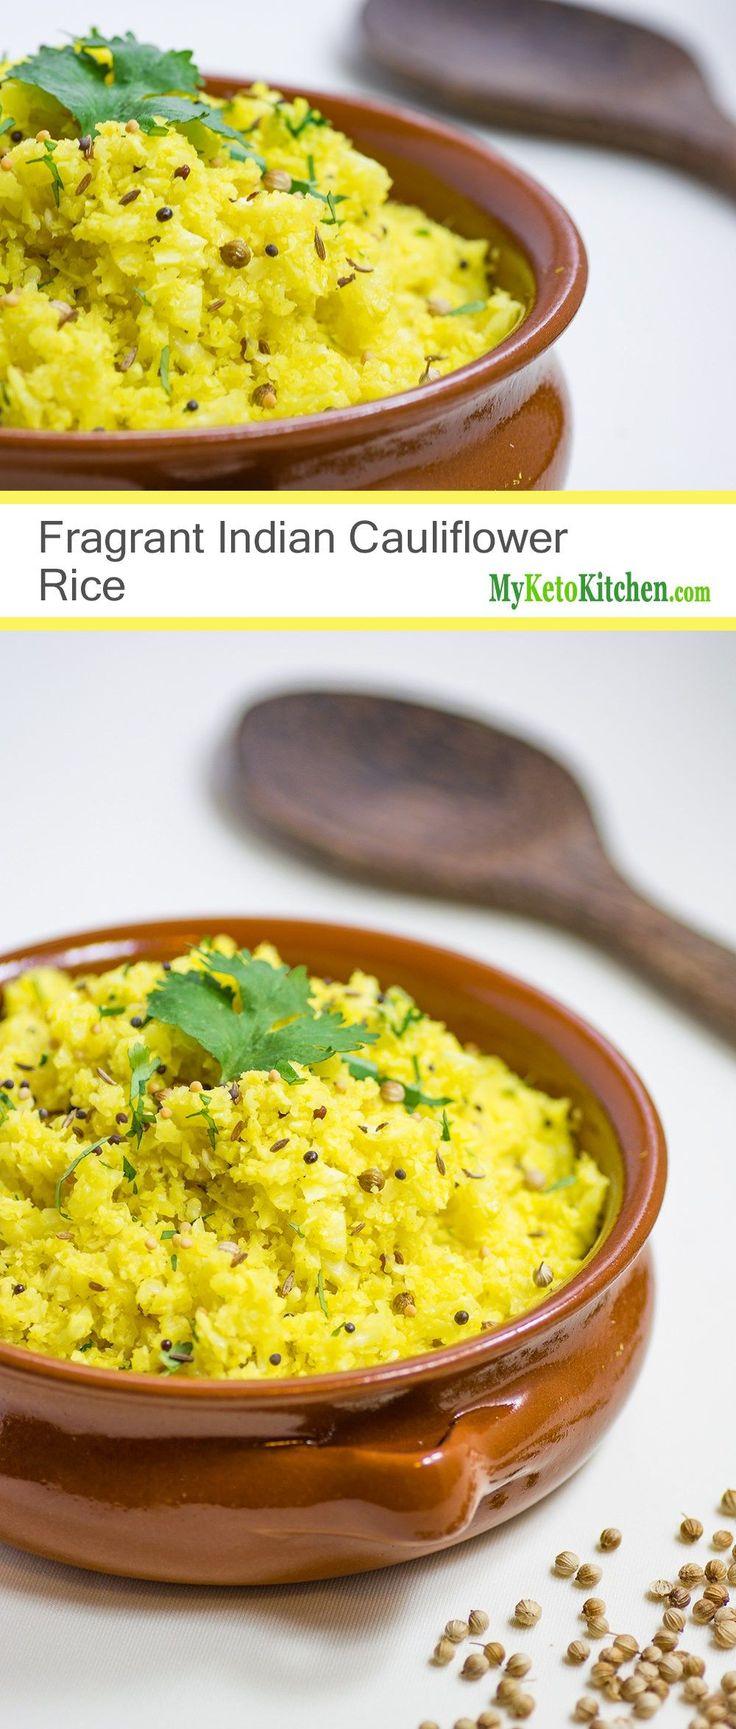 Fragrant Indian Cauliflower Rice (Low Carb, Keto, Gluten Free, Grain Free)